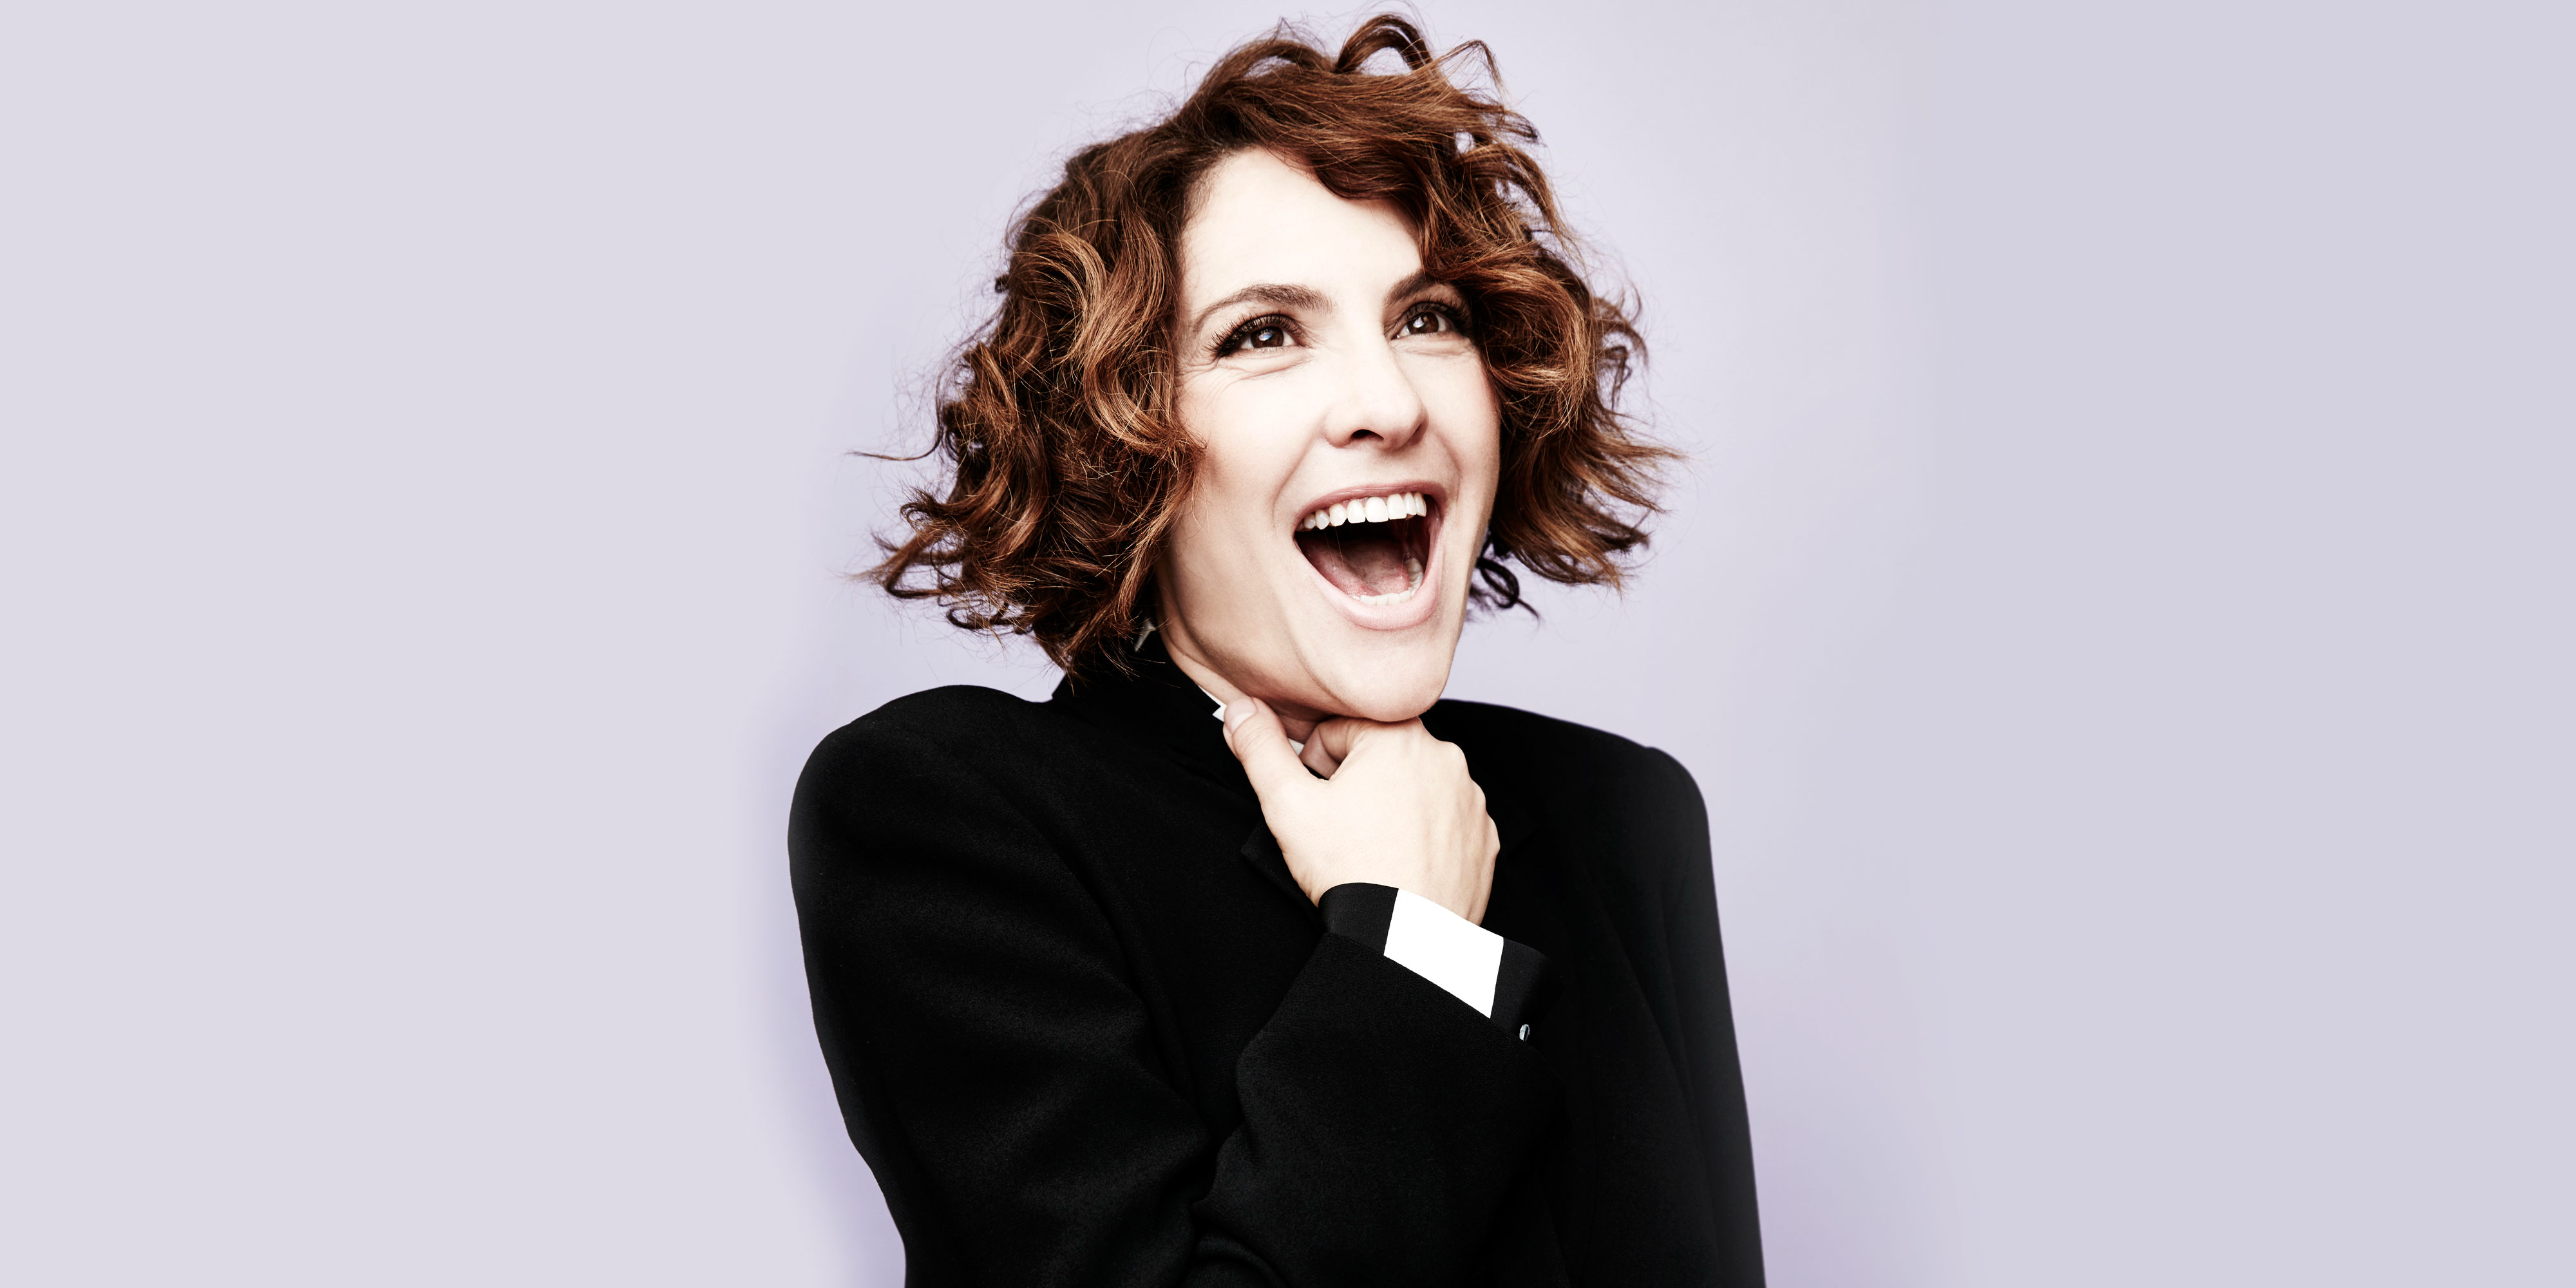 jill soloway - photo #23